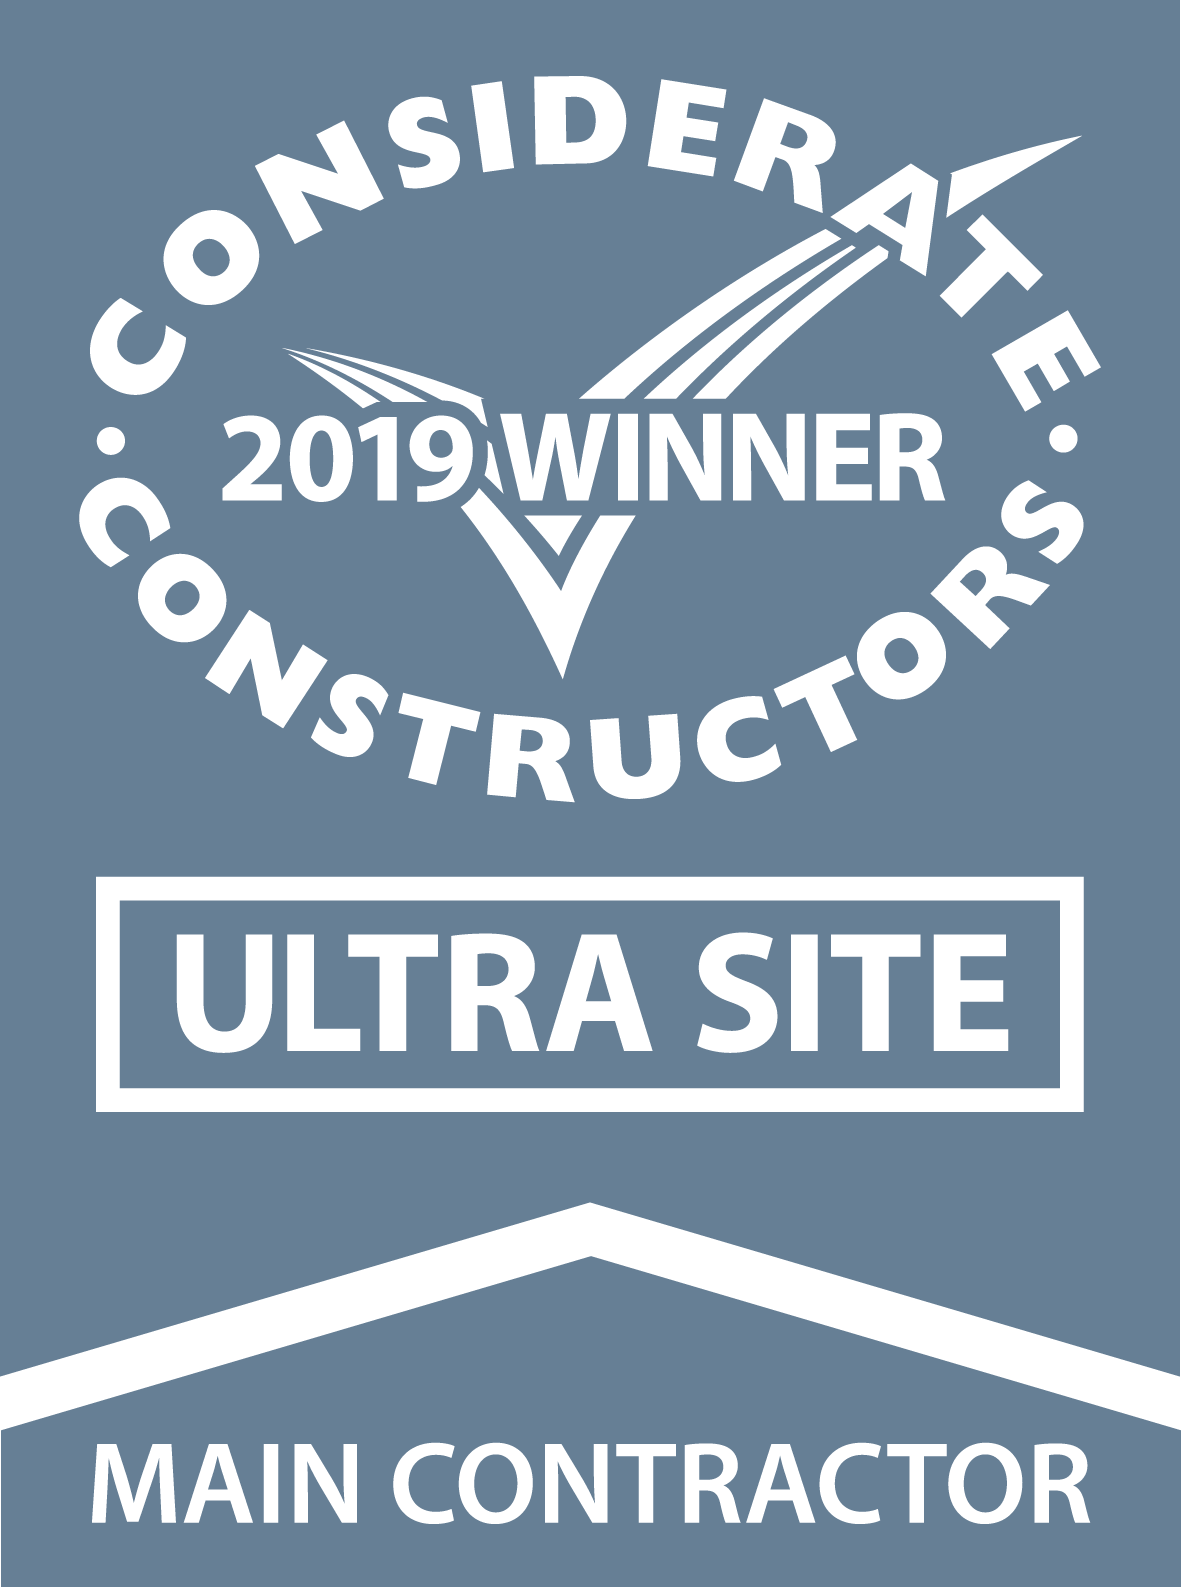 ultra site 2019 logo WINNER CONTRACTOR.png